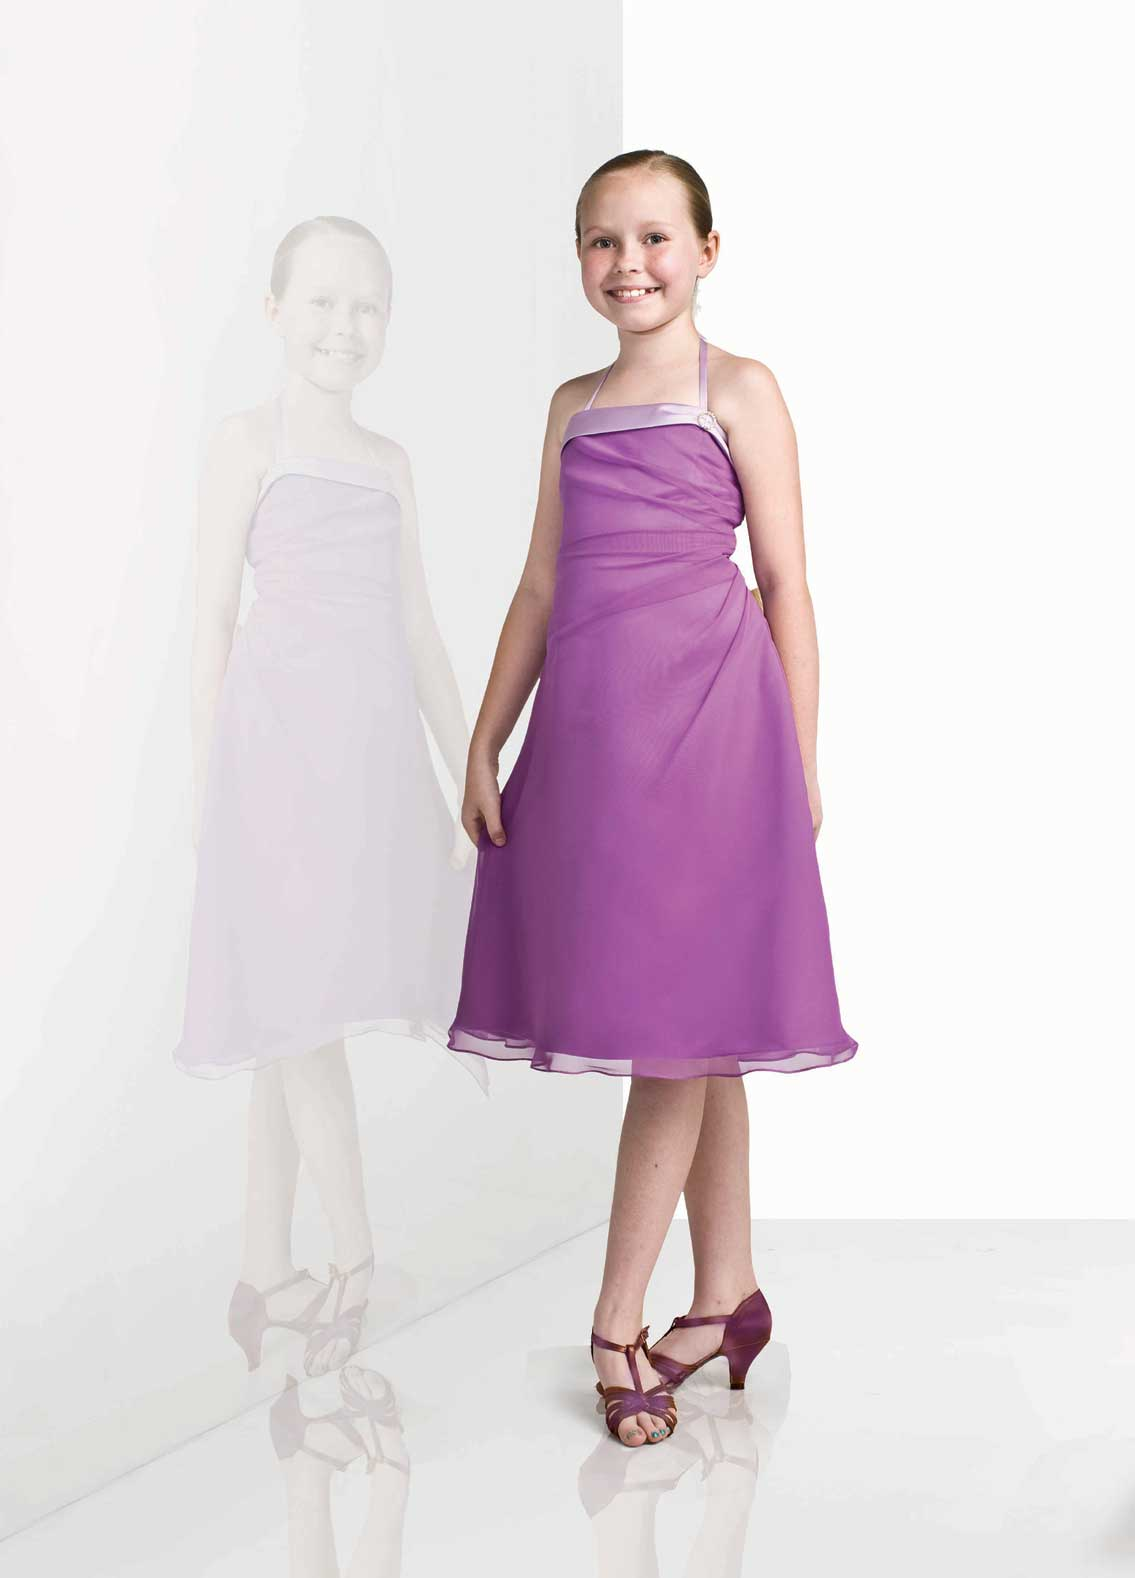 Junior bridesmaid dresses davinci bridal designed especially for the young ladies in your wedding party davincis junior bridesmaid dresses combine simple lines and charming colors for an ombrellifo Images